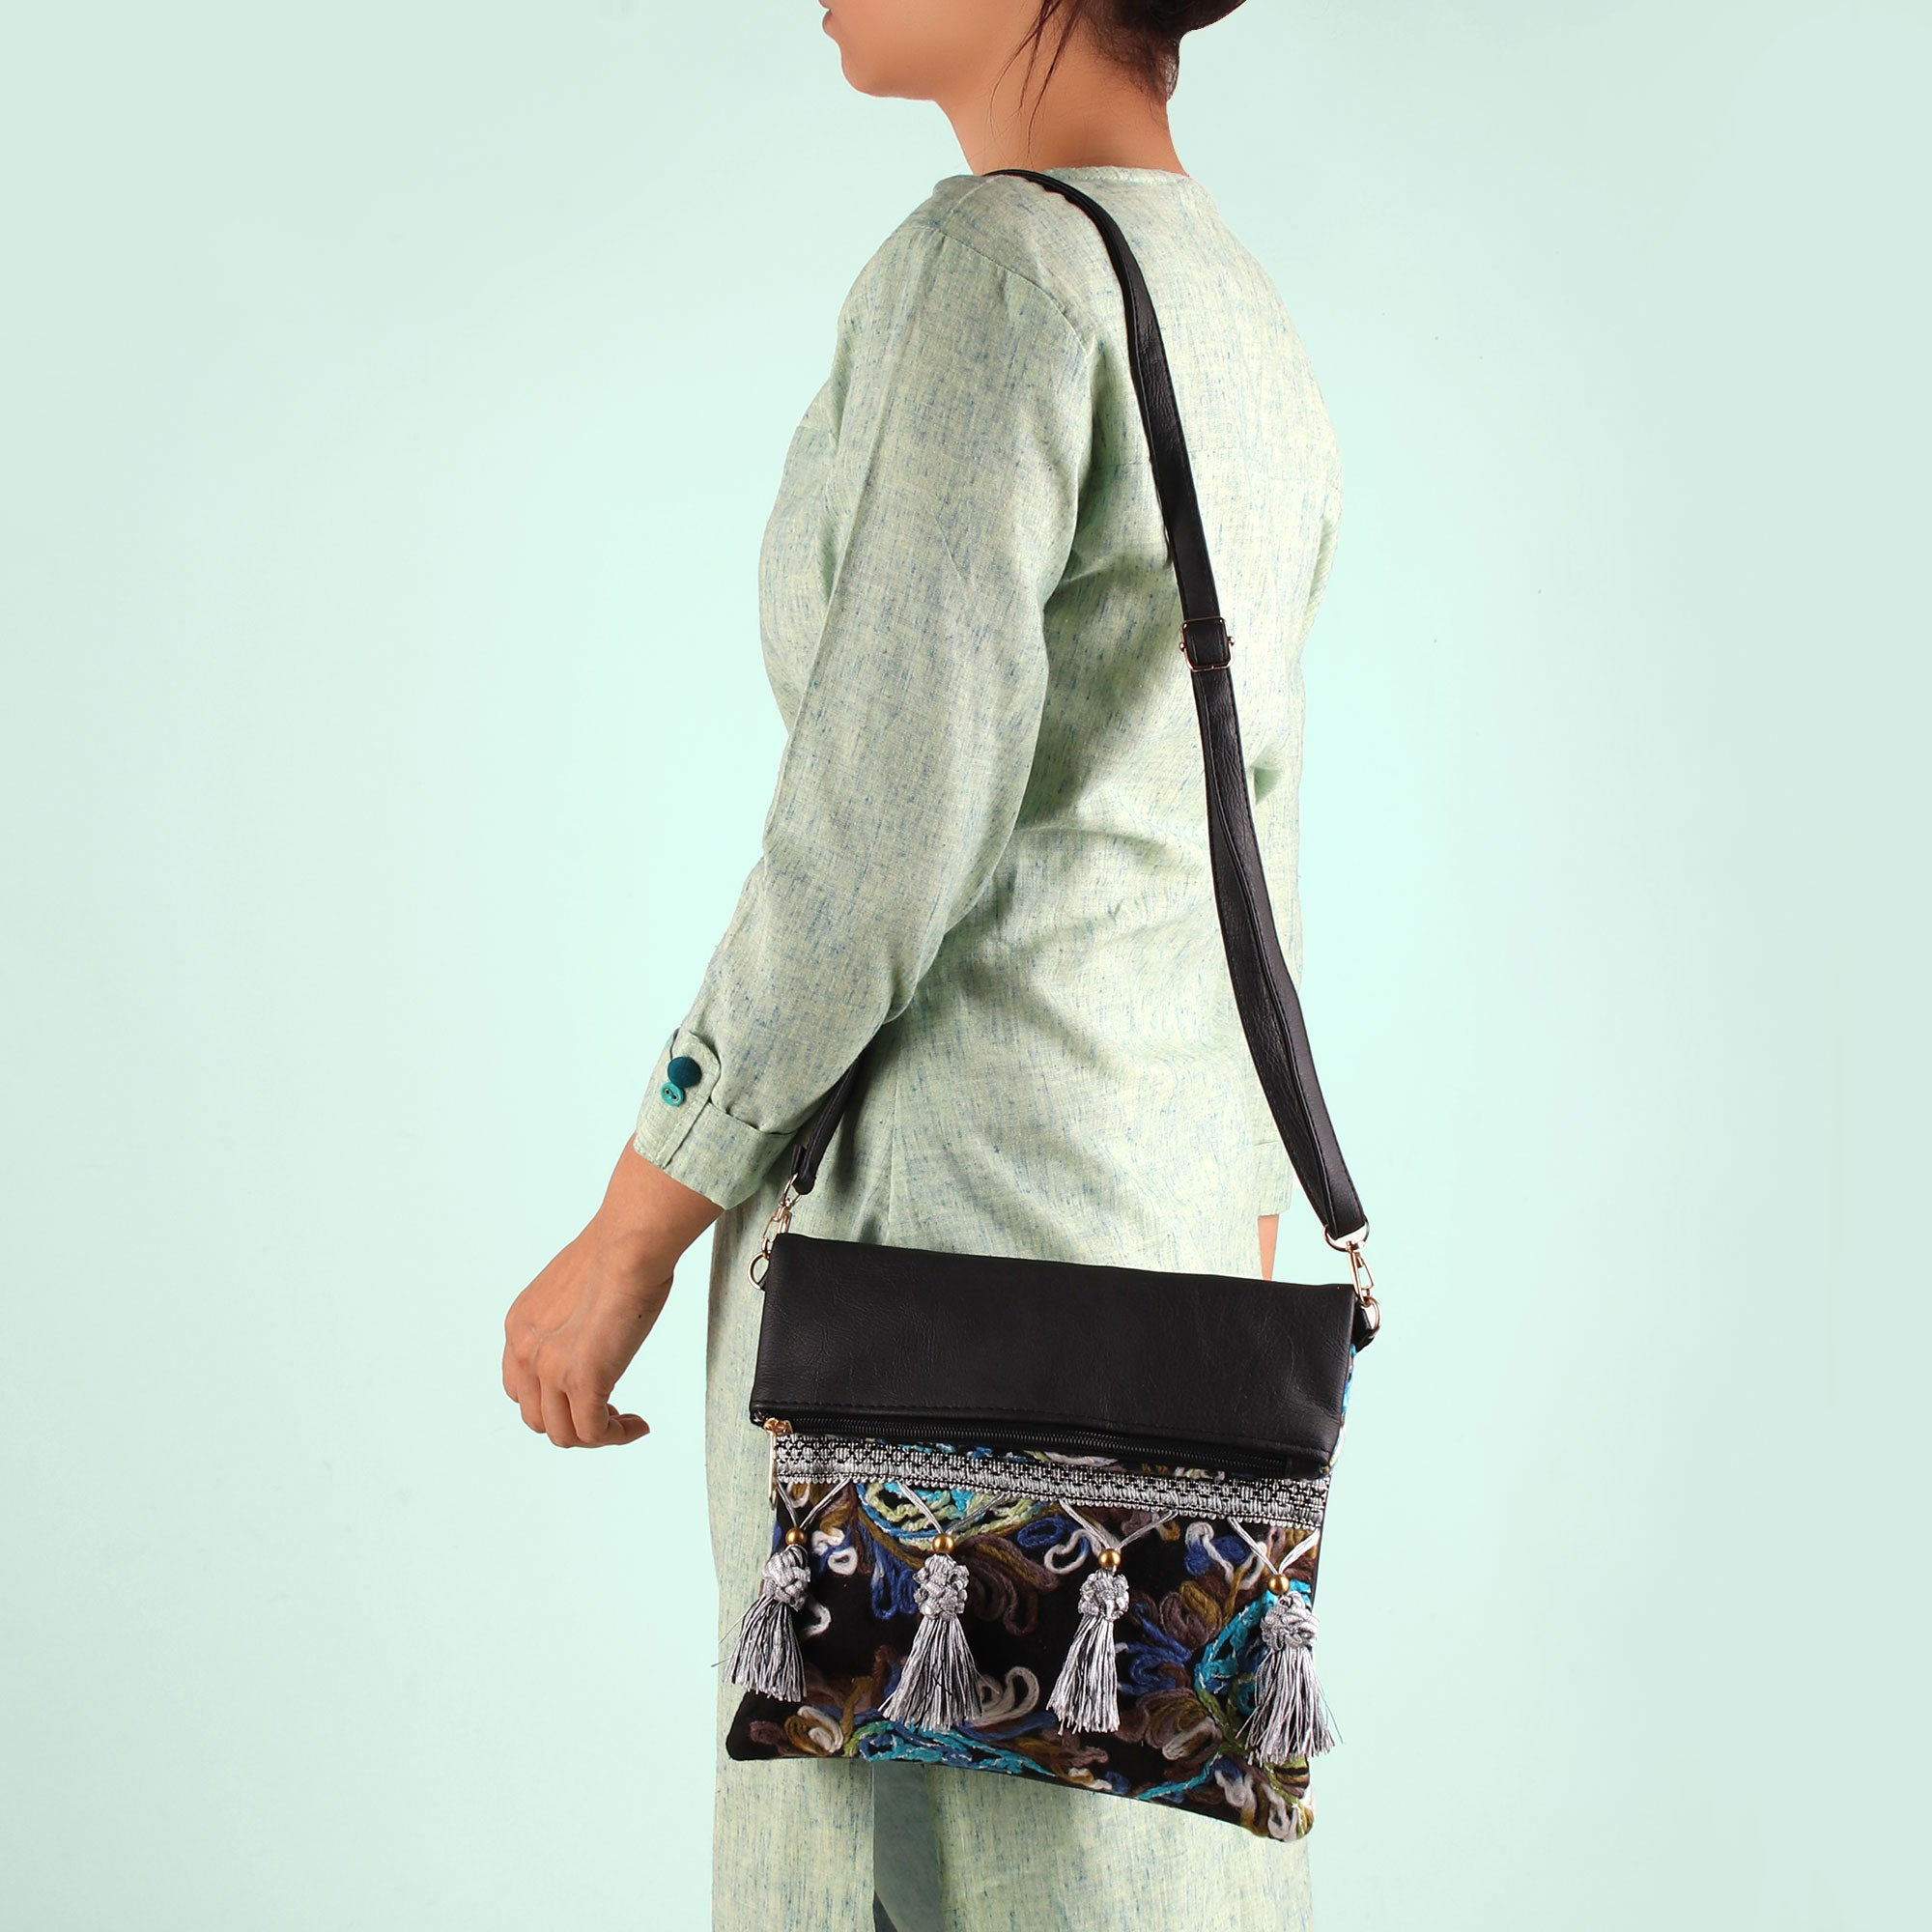 Sling Bag,The Roohdar Art Black Sling Bag with Blue Embroidery - Cippele Multi Store